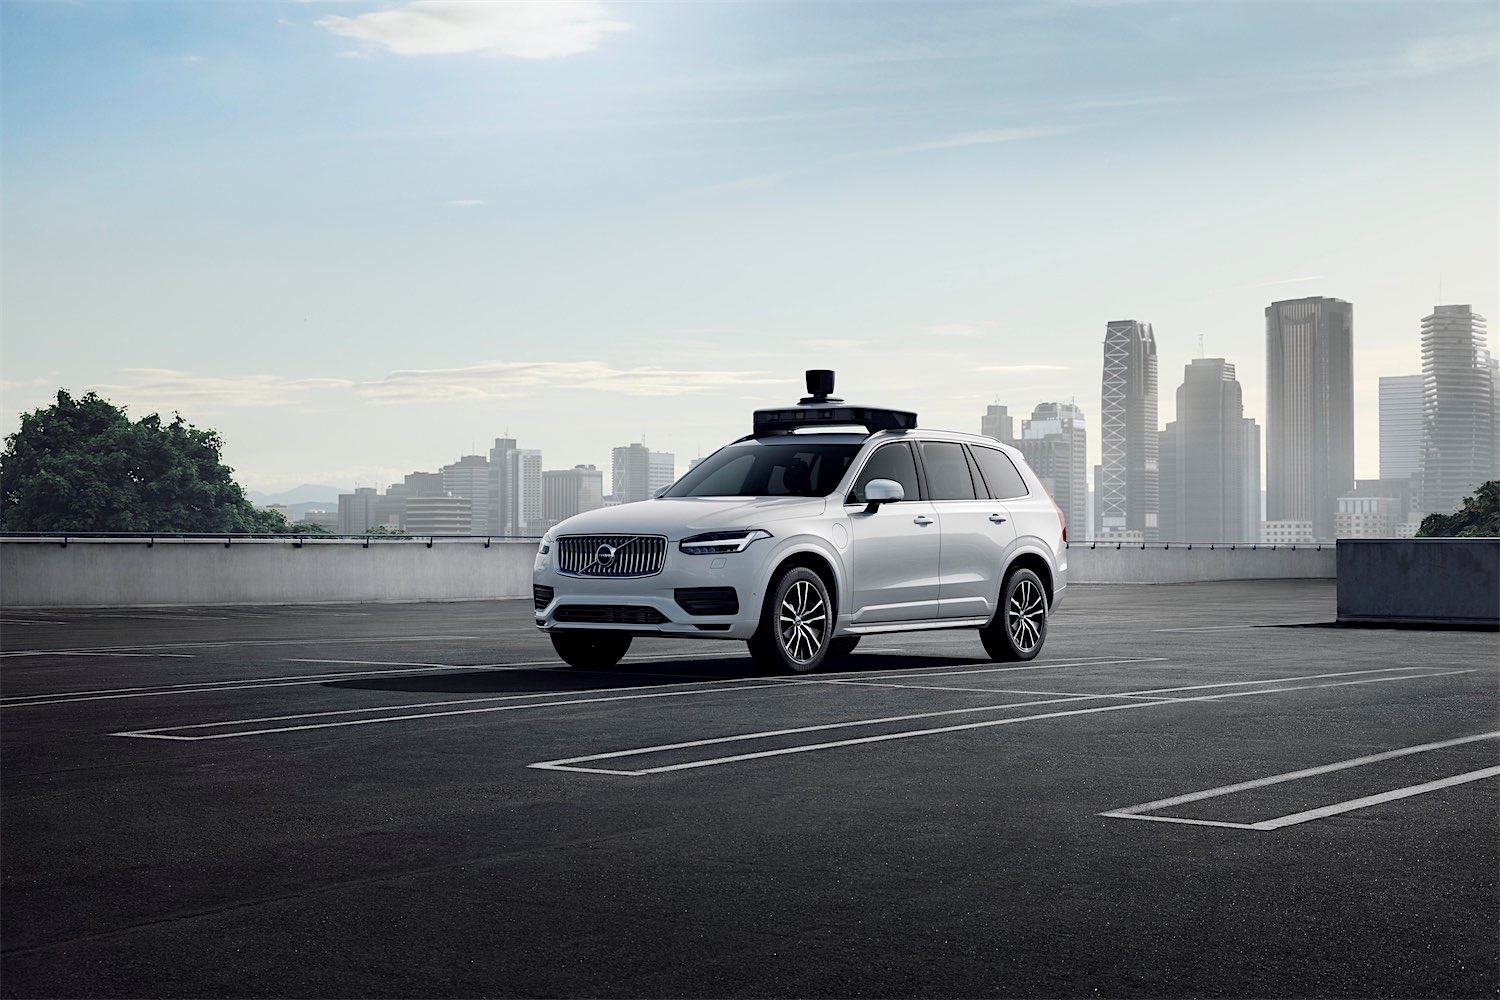 254706_volvo_cars_and_uber_present_production_vehicle_ready_for_self-driving-resized.jpg